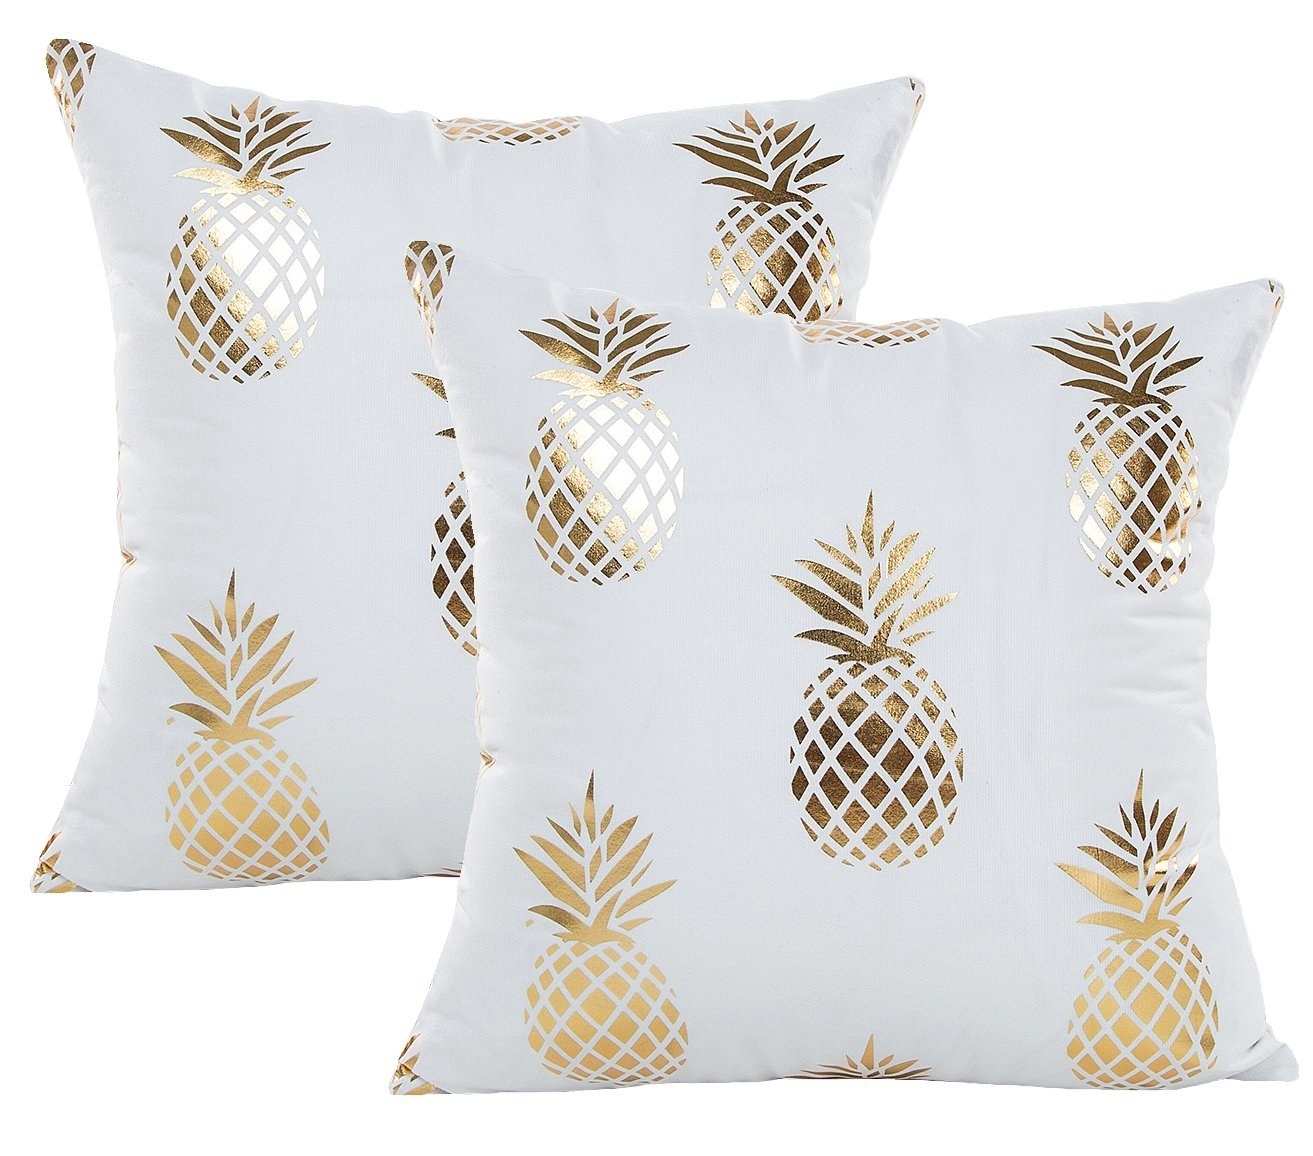 32 Great Dorm Room Decor Products